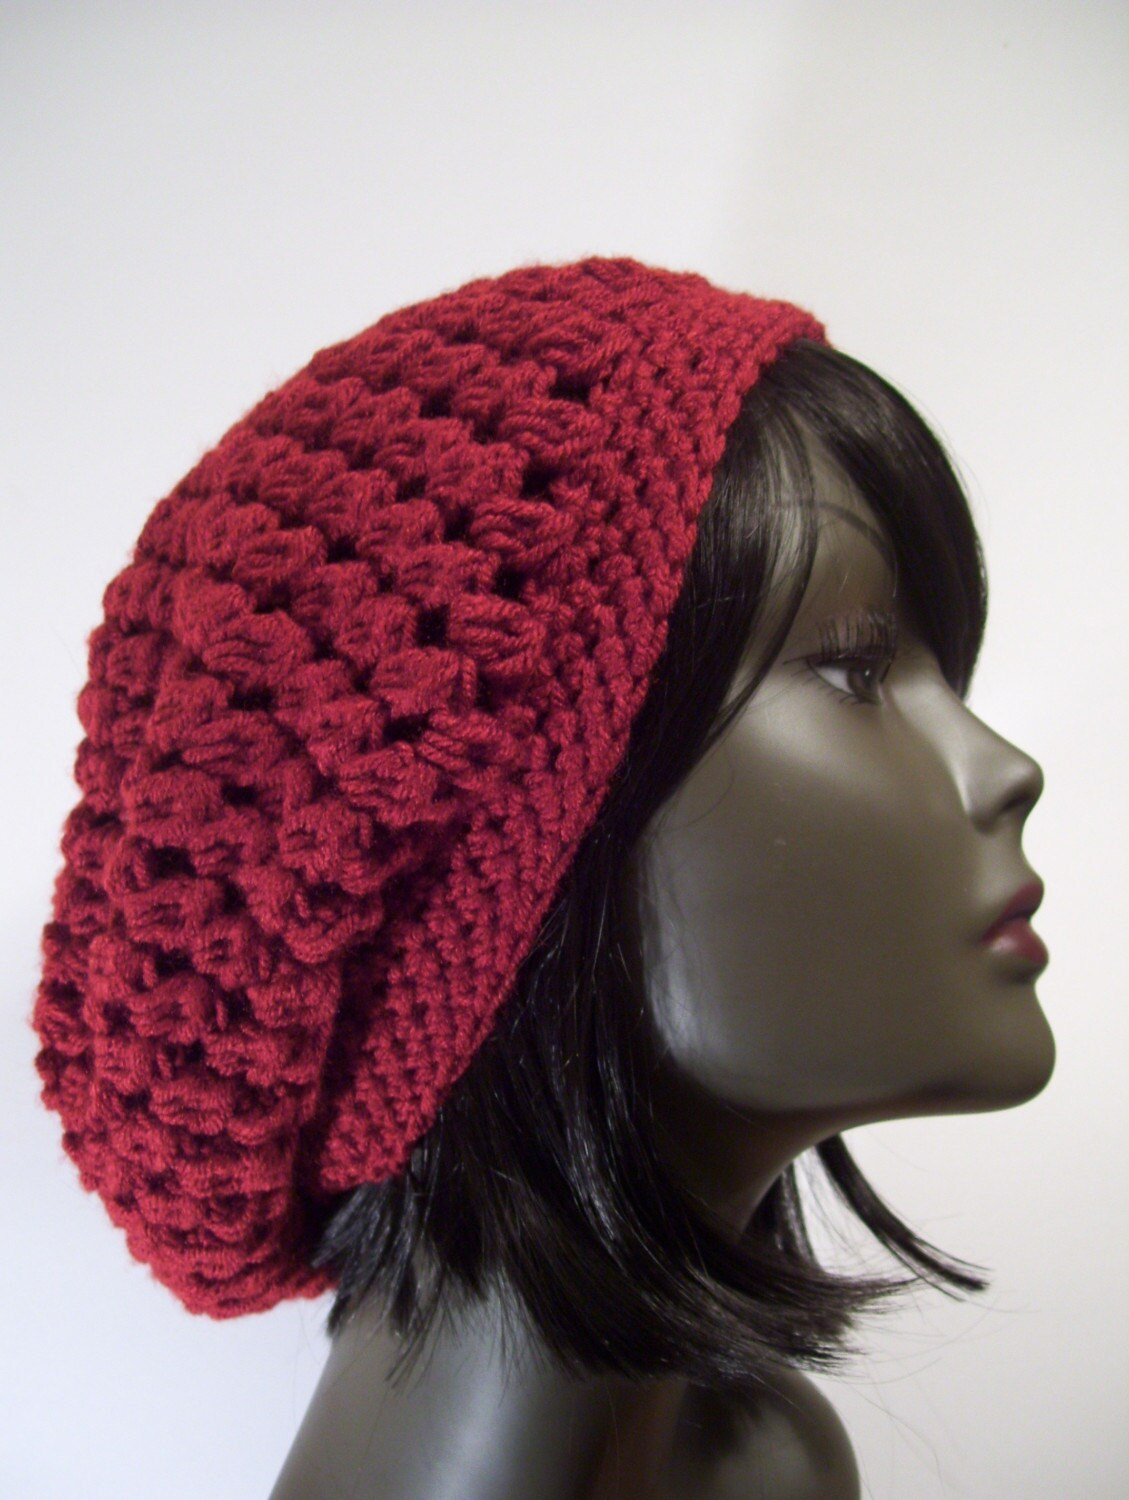 Crochet Slouchy Hat Patterns For Beginners Free : CROCHETED BEANIE PATTERNS FREE PATTERNS